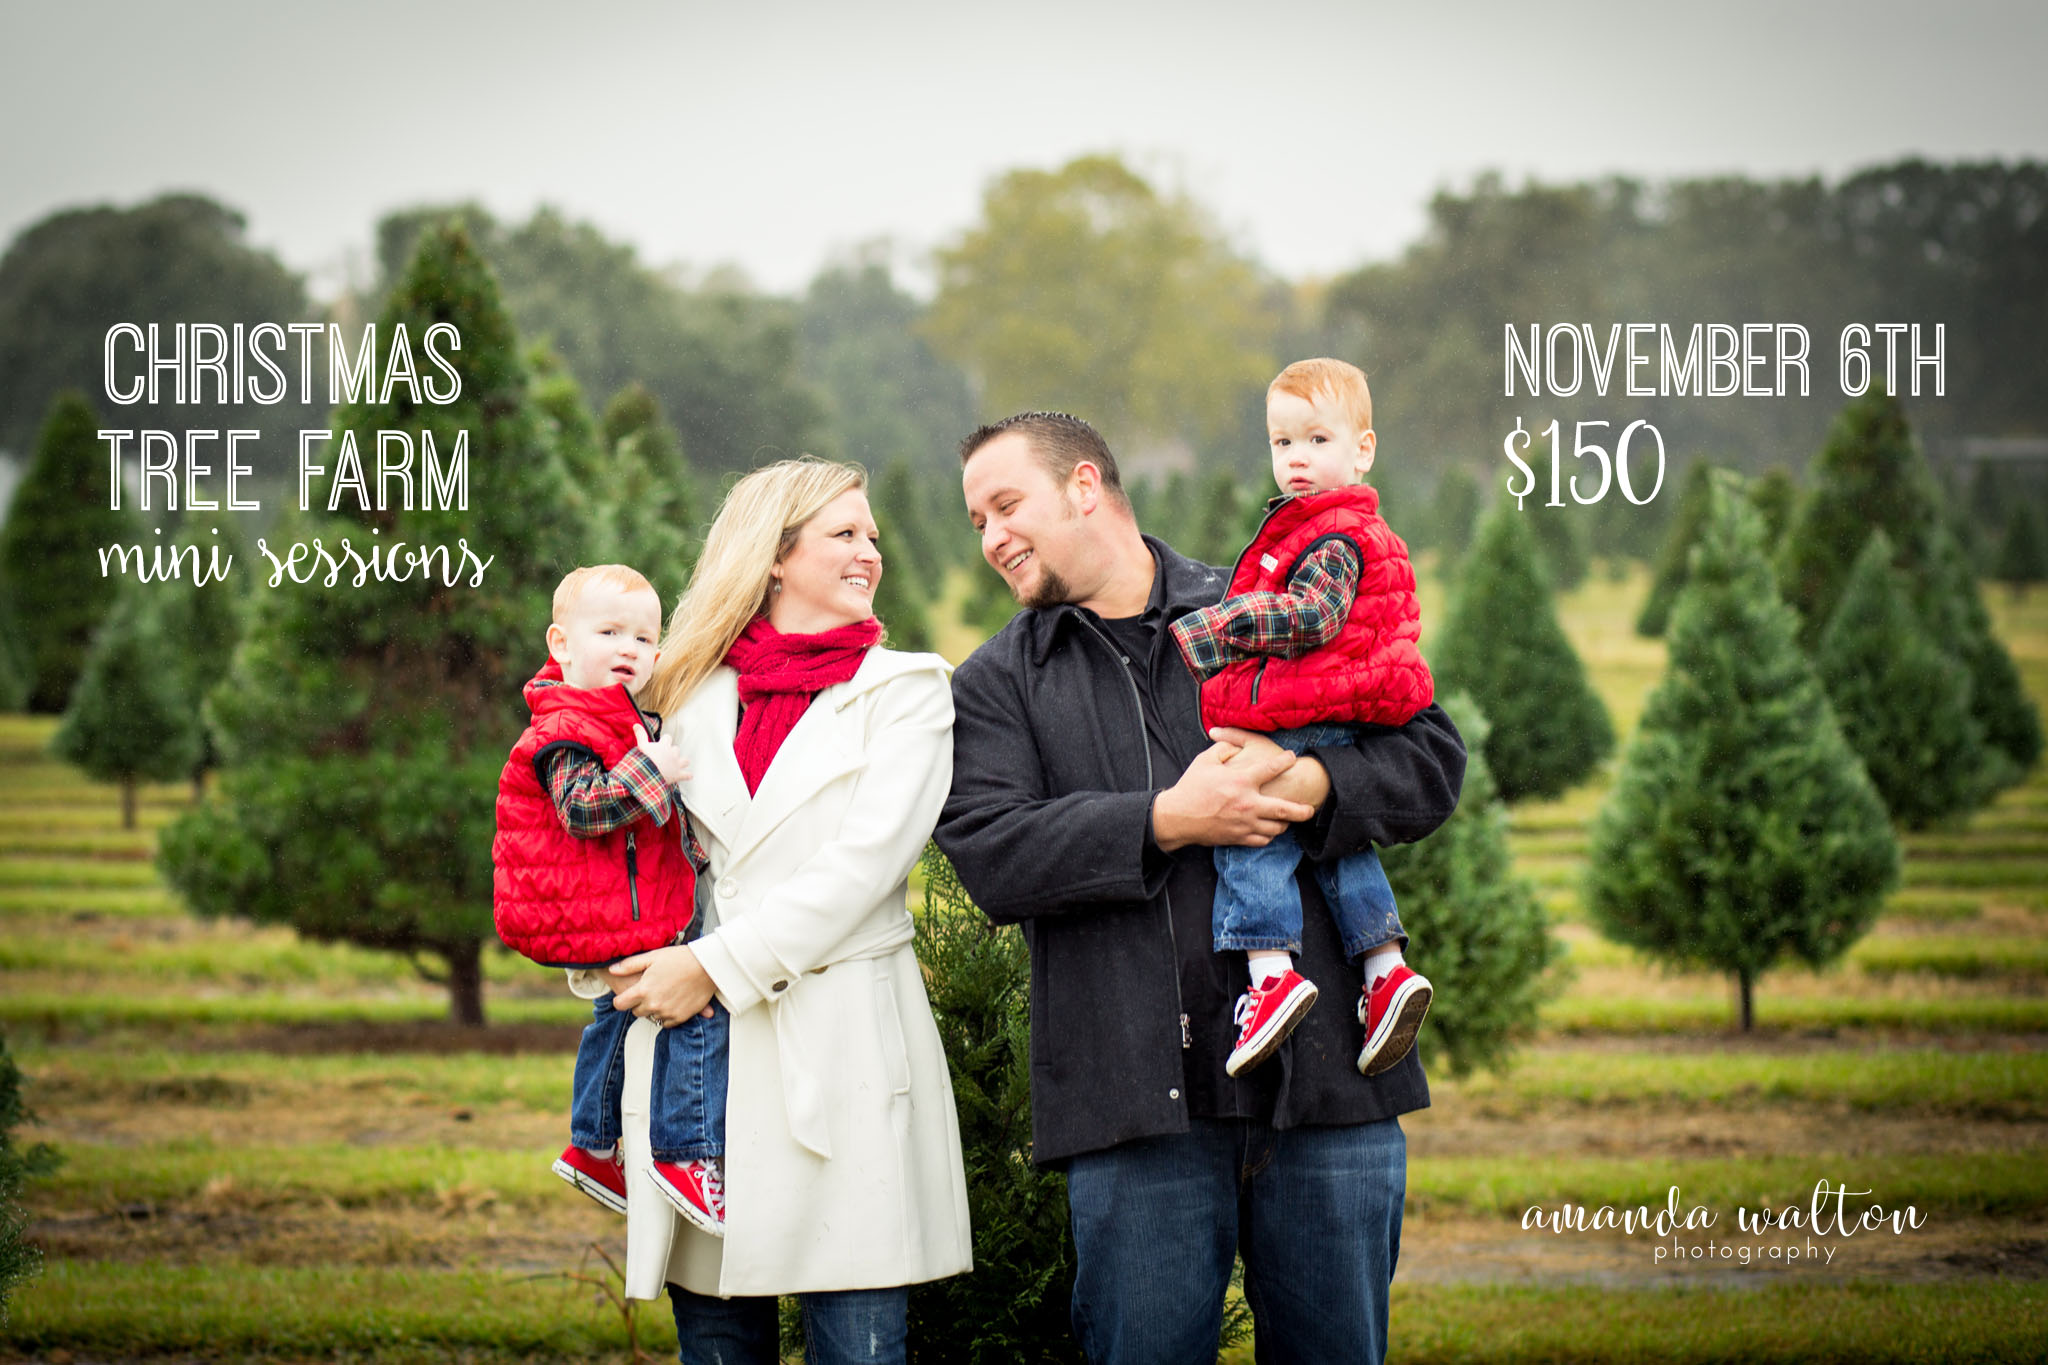 Christmas Tree Farm Photography.Christmas Tree Farm Mini Sessions